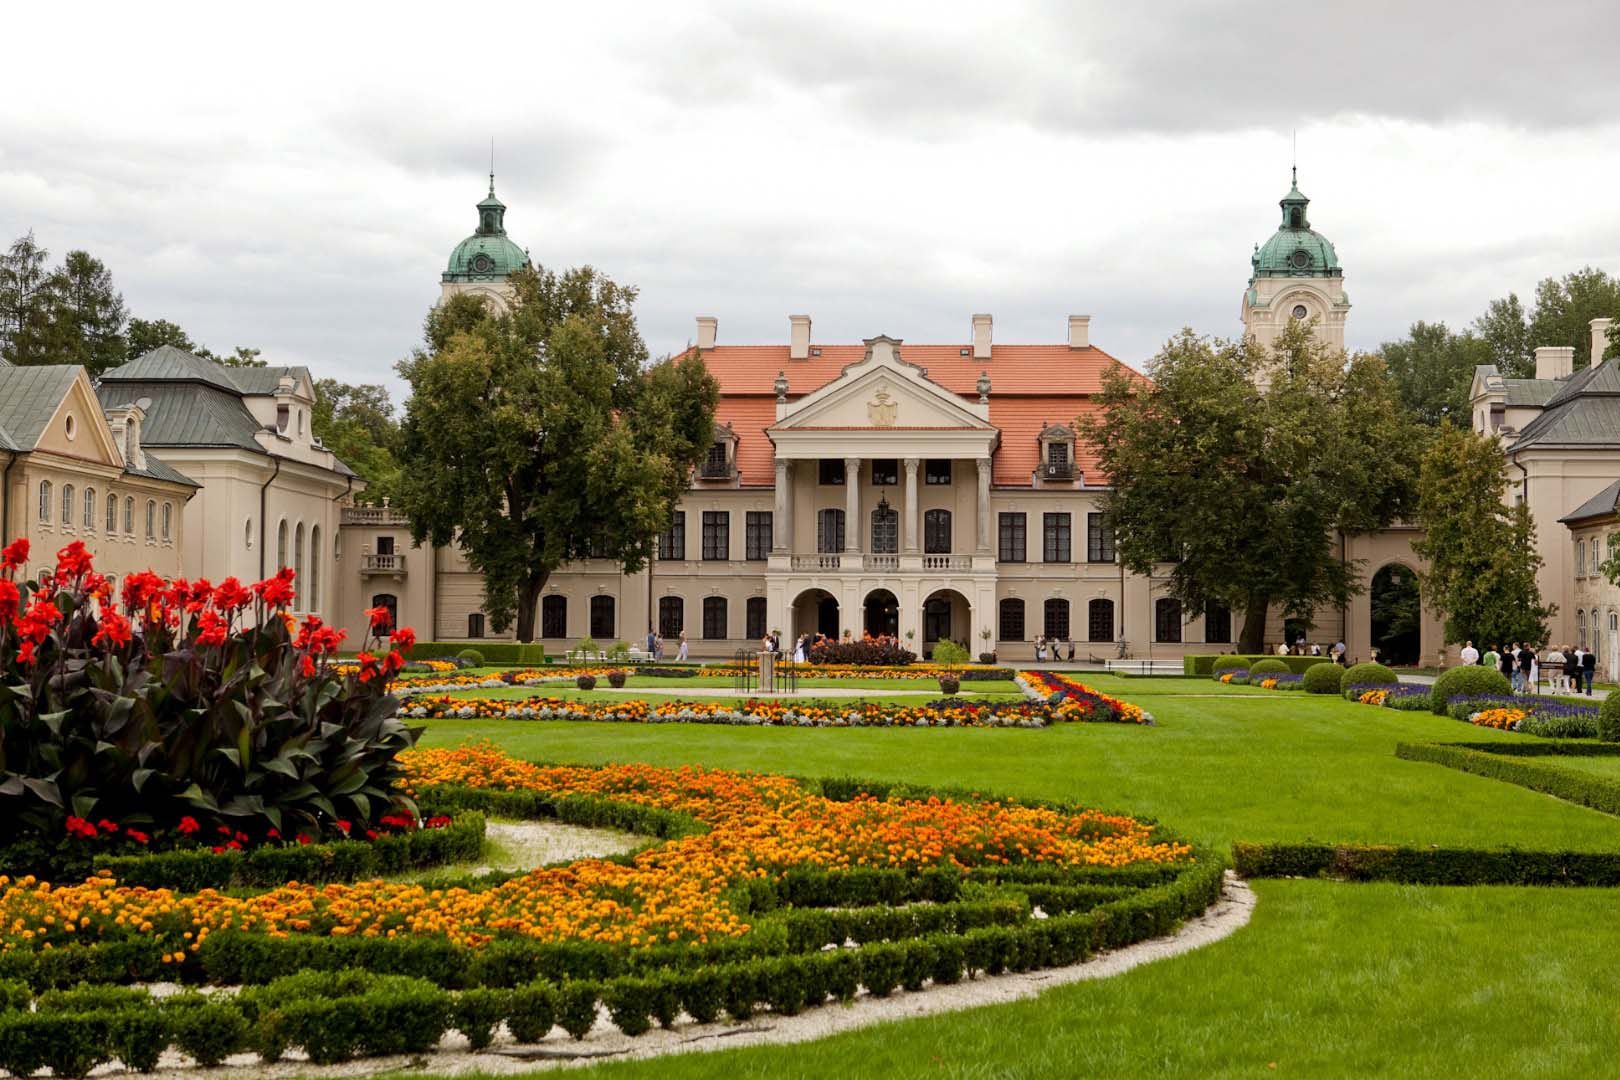 The charming, majestic palace in the film Shaandaar is Zamoyski Palace located in Kozlowka, LUBLIN, POLAND